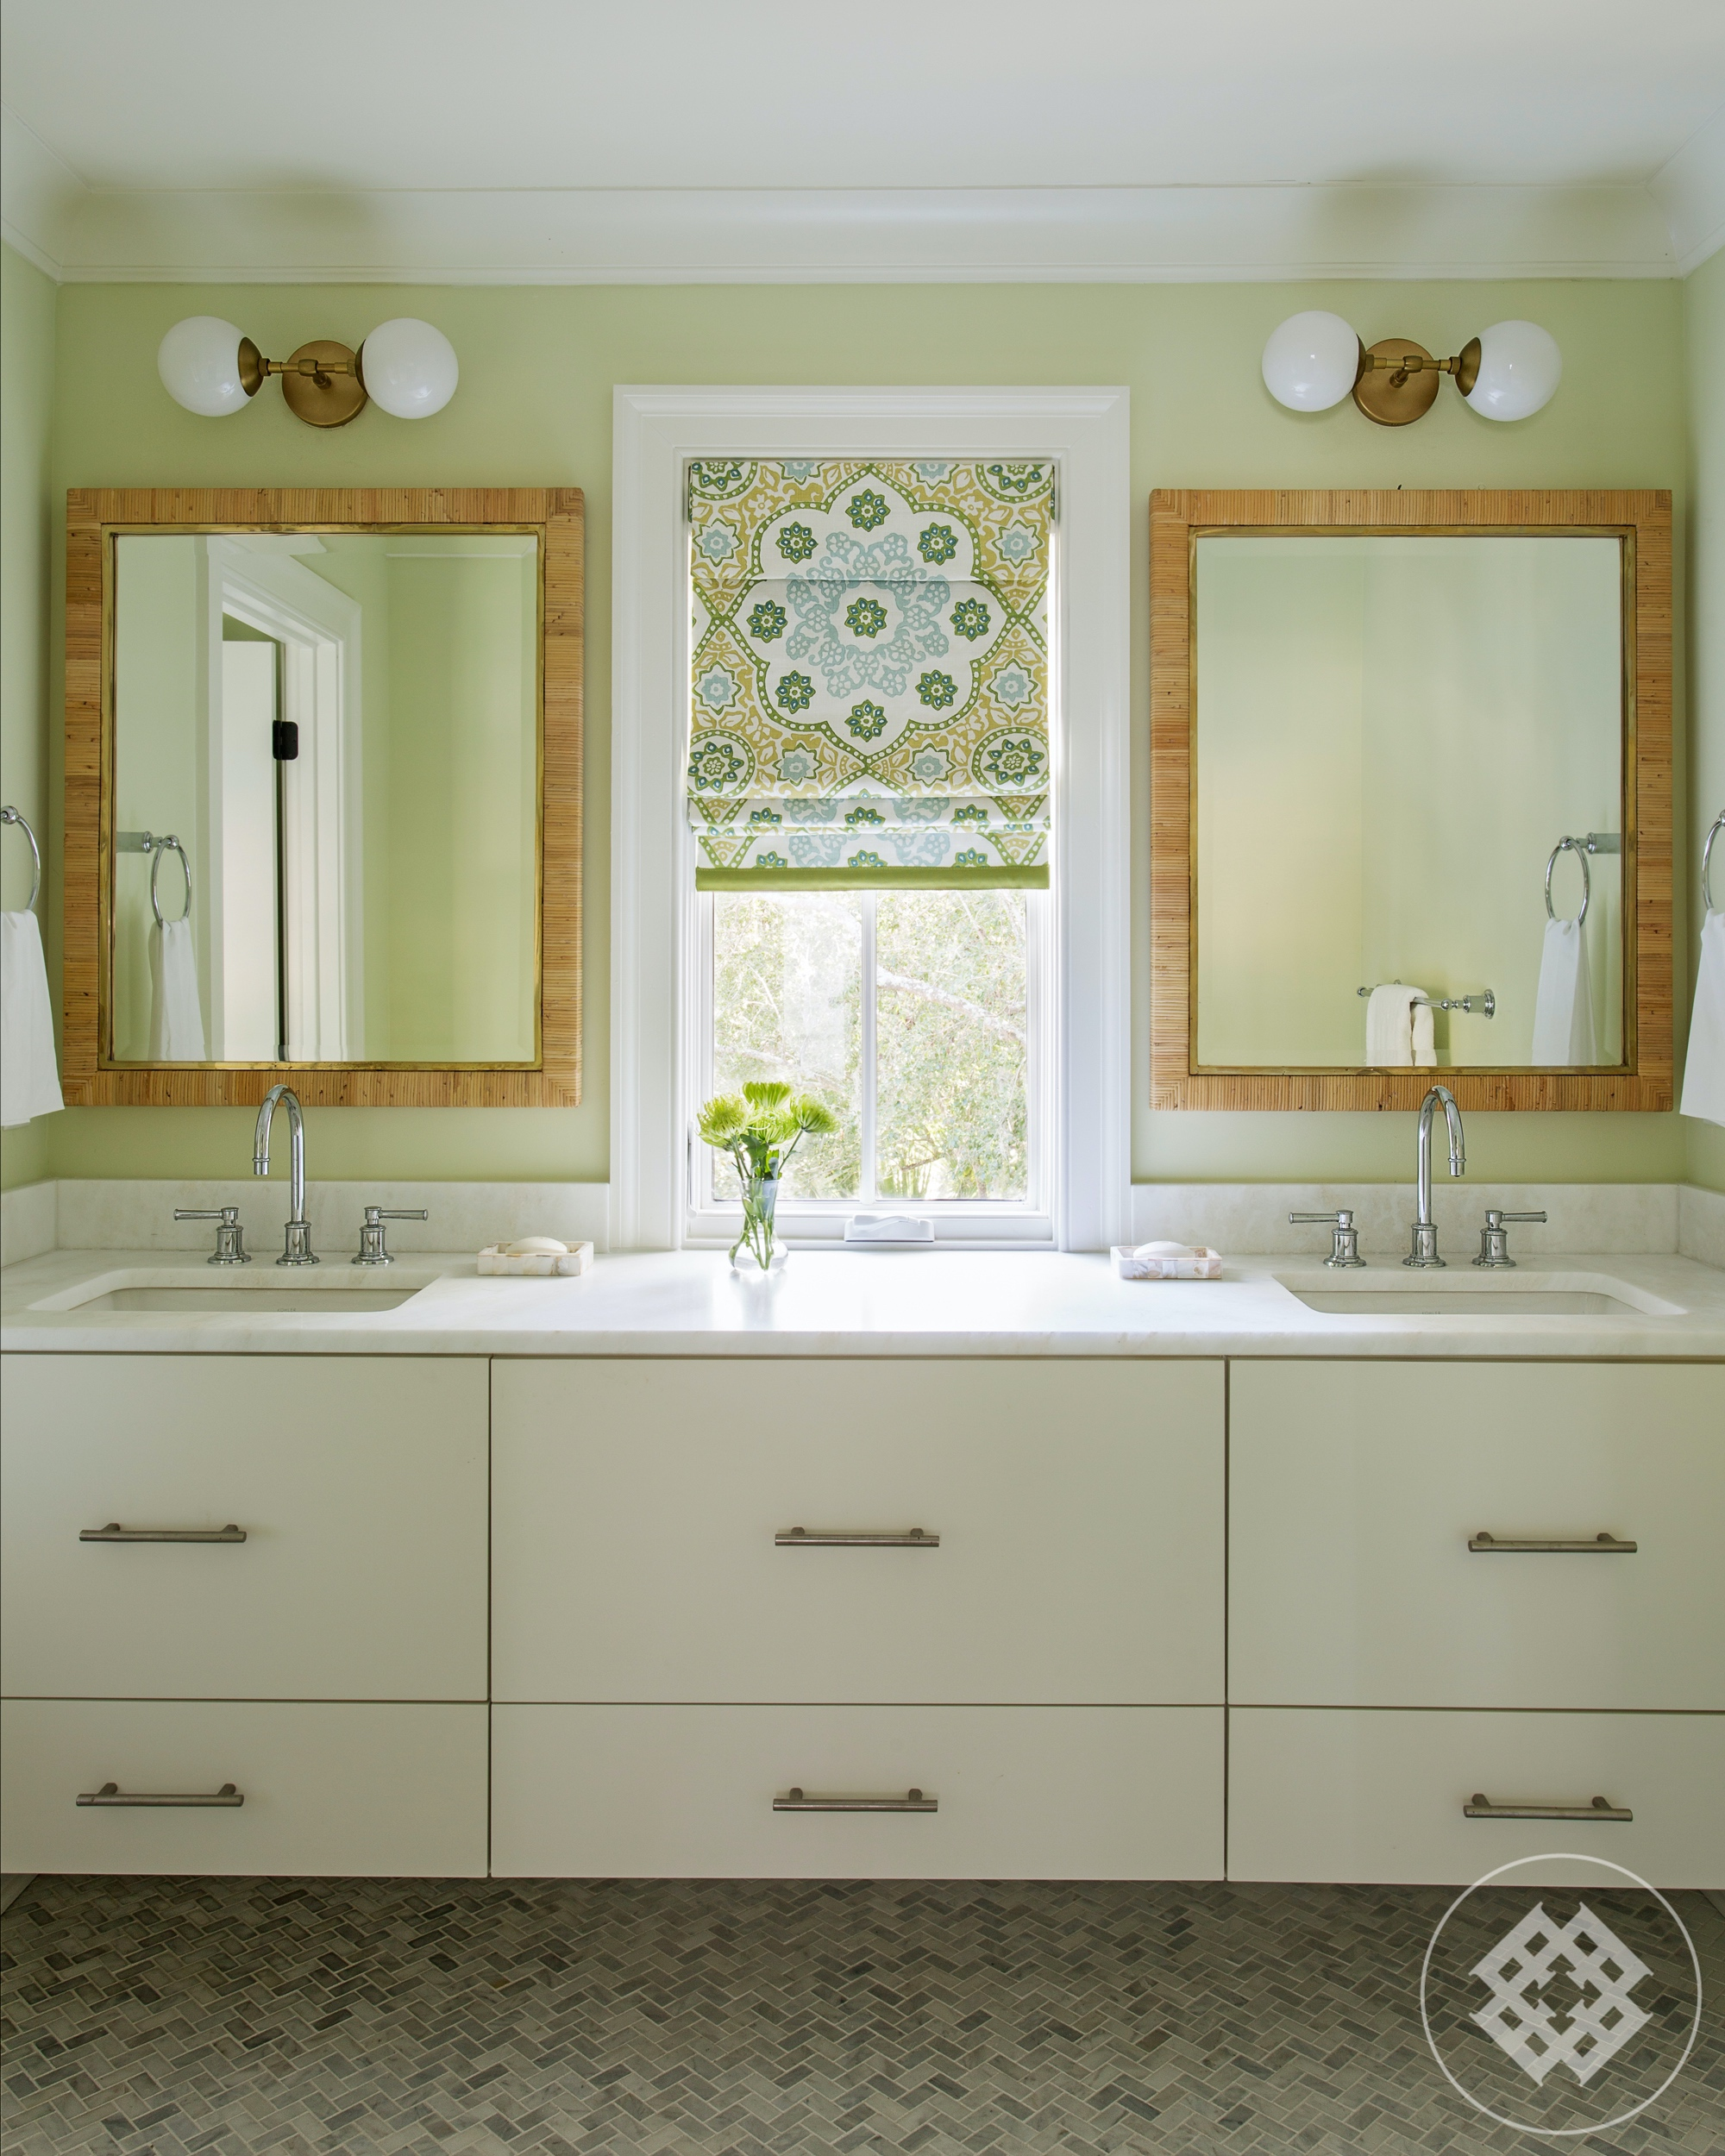 hss-master-bath-custom-cantelivered-vanity-handmade-roman-shade.jpg